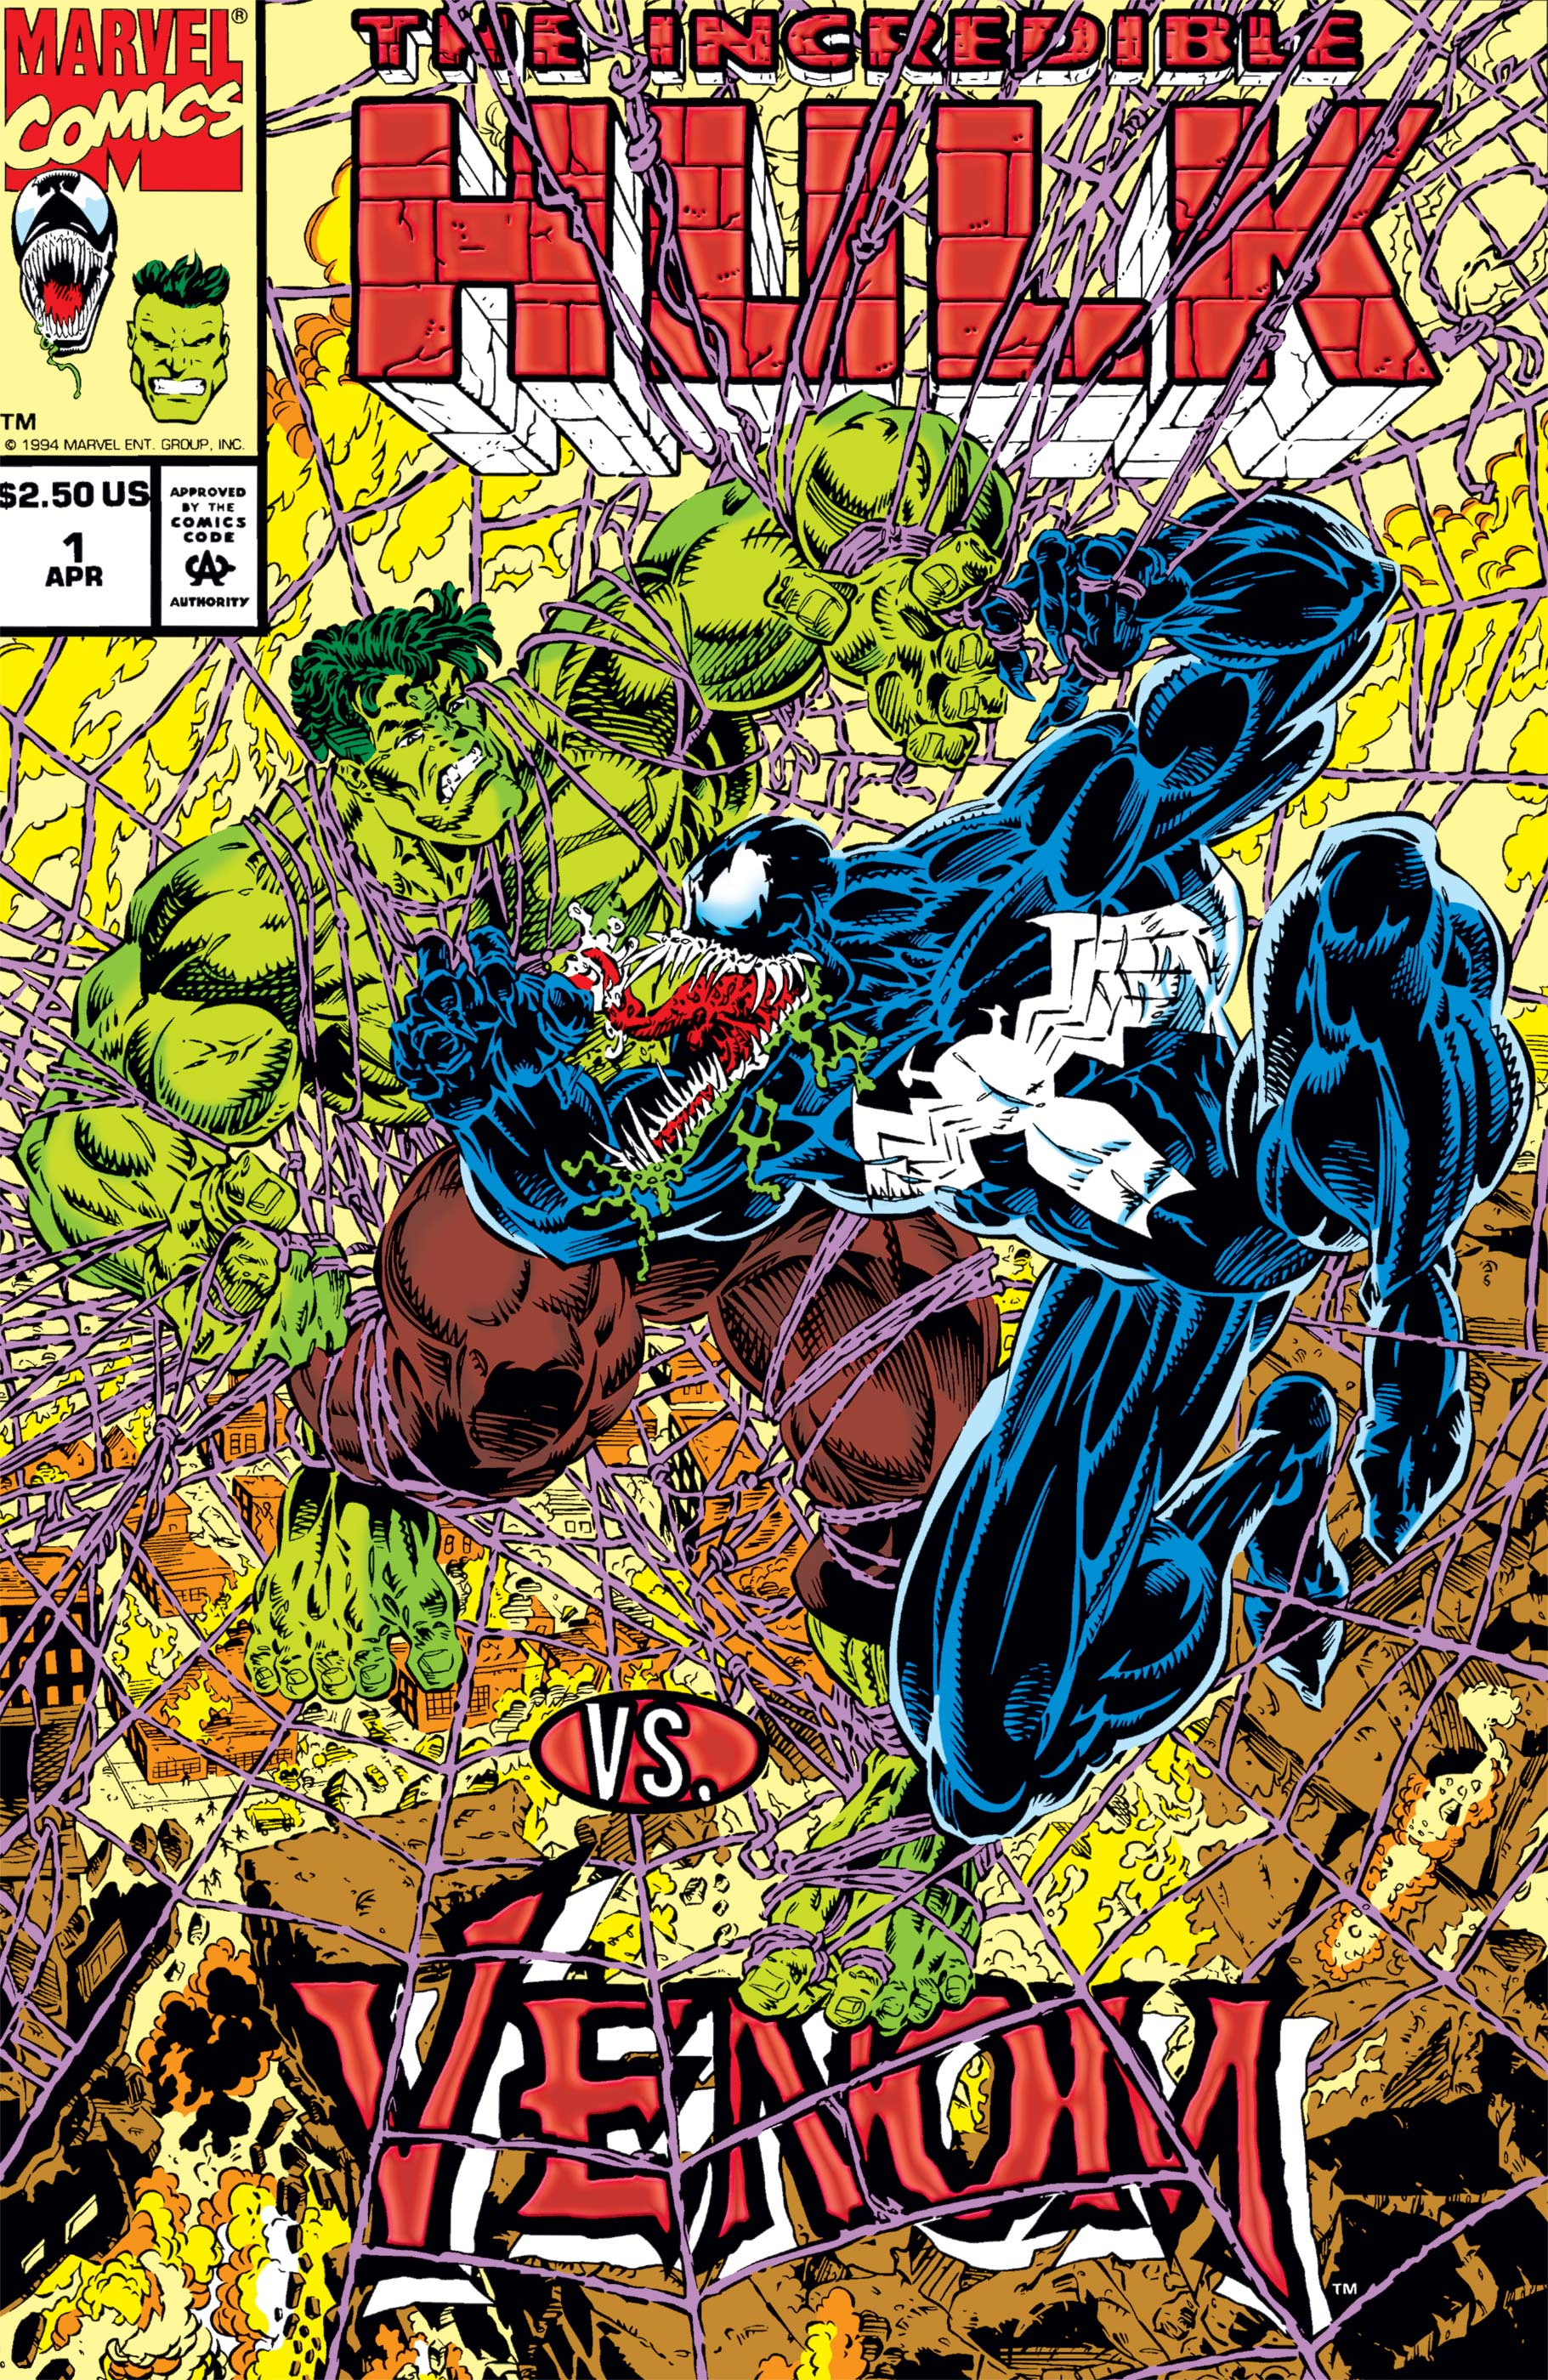 Incredible Hulk Vs. Venom (1994) #1